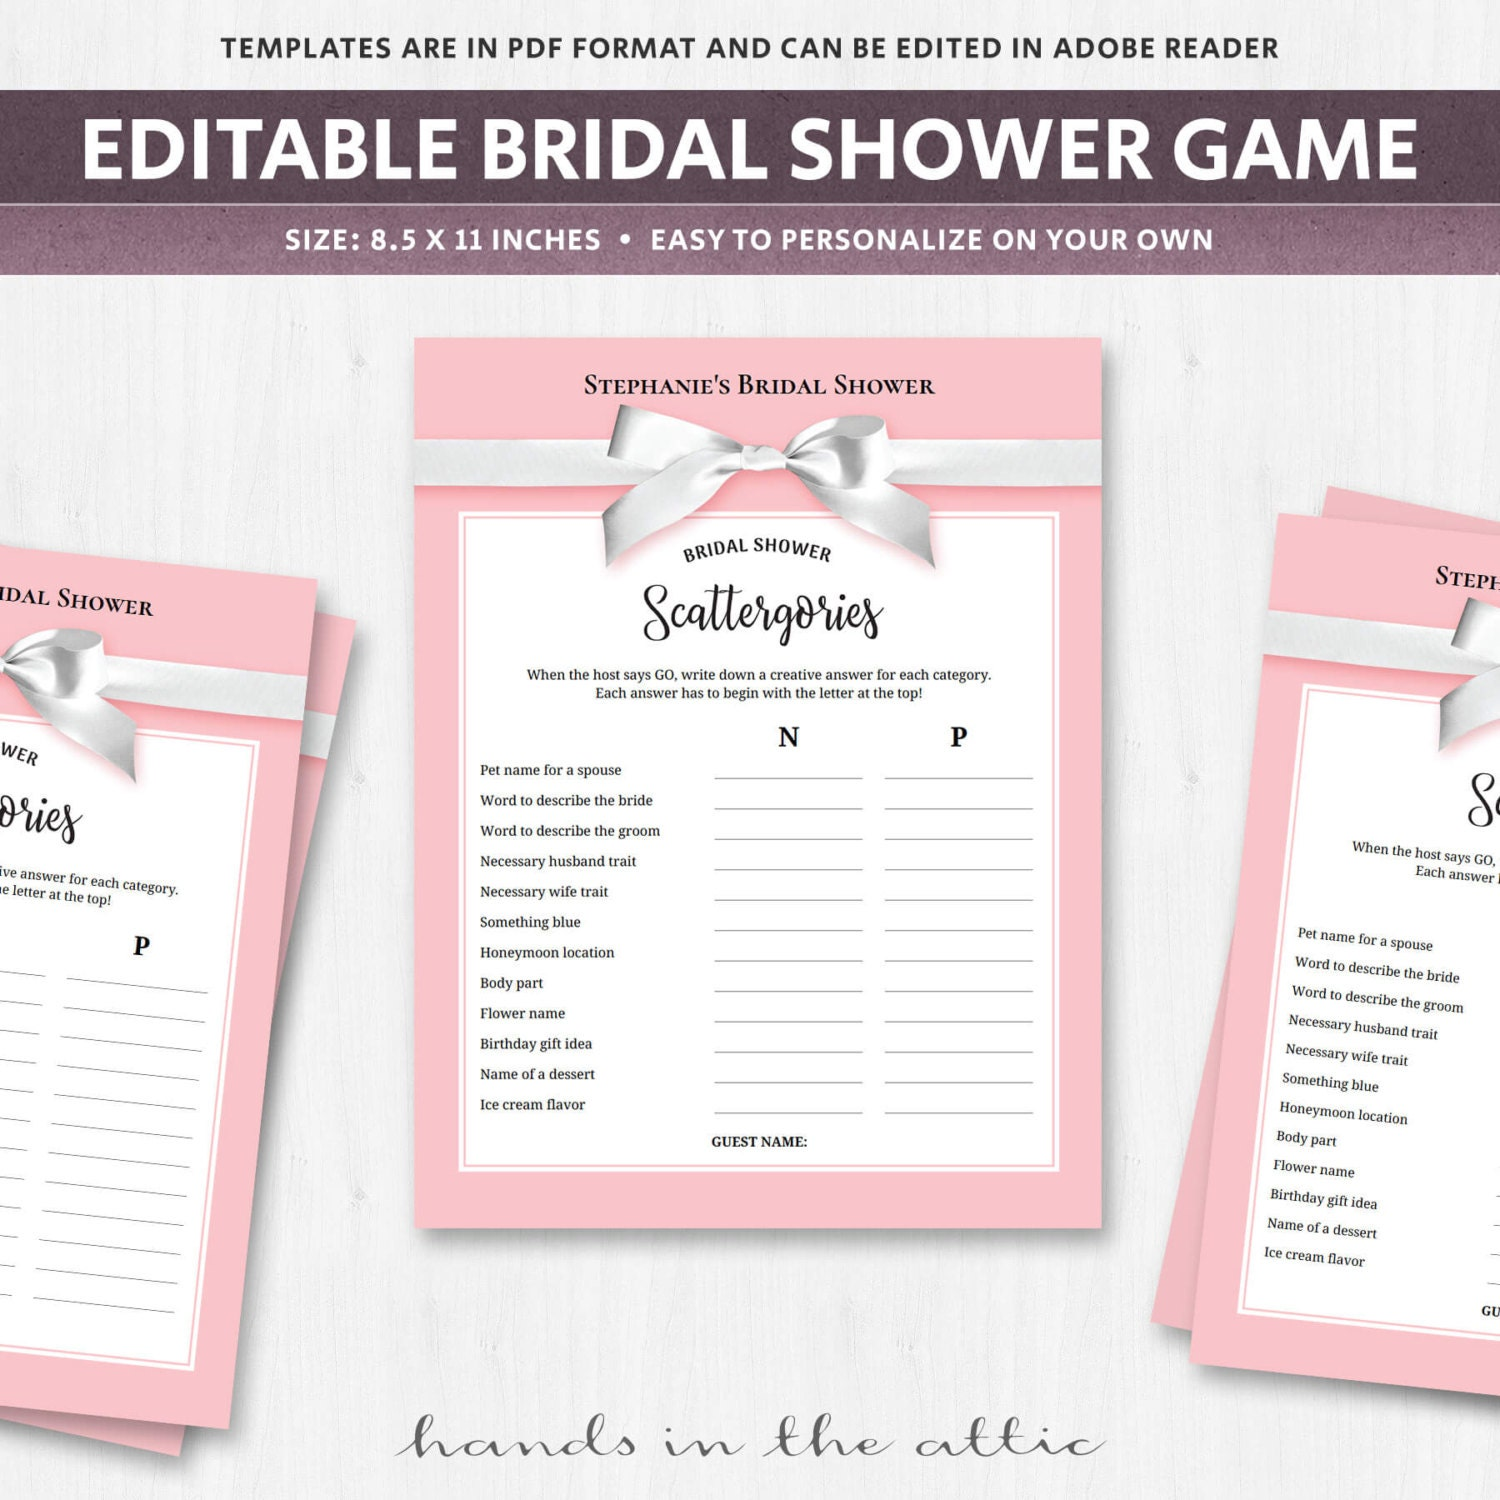 Bridal shower scattergories categories game make your own | Etsy